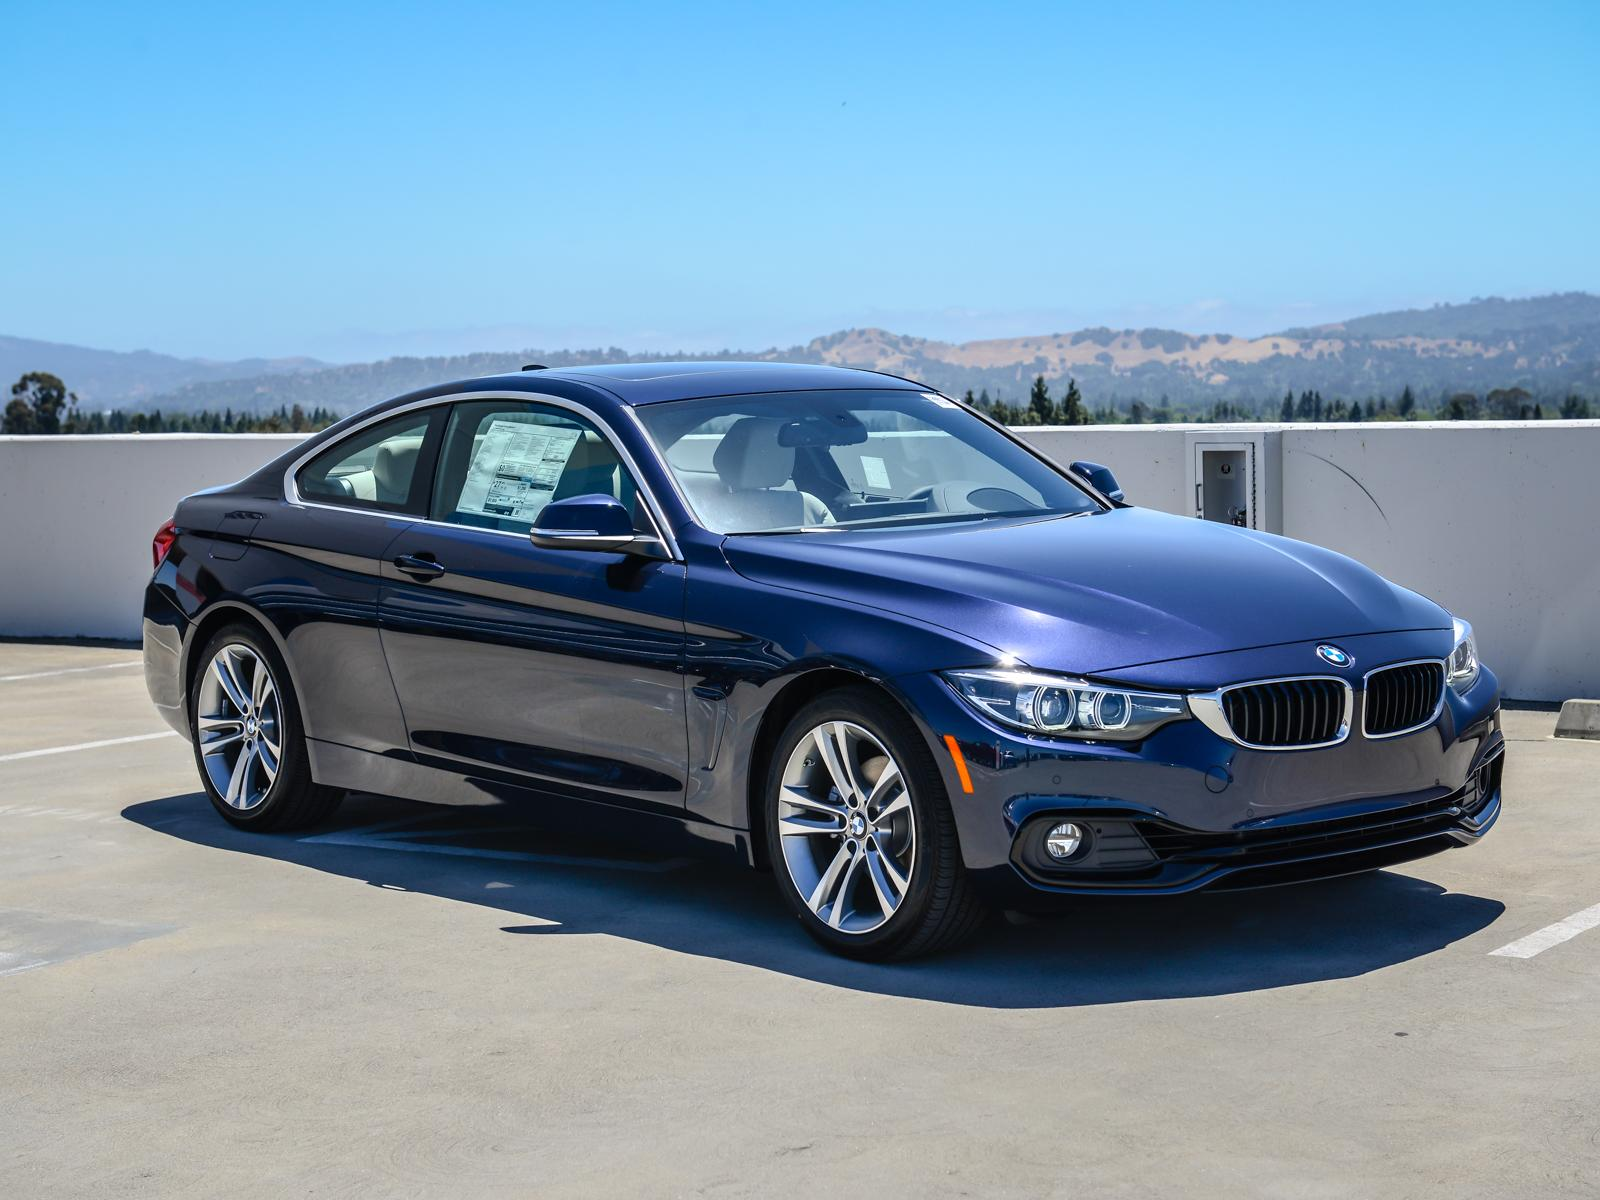 New 2019 BMW 4 Series 430i Coupe 2dr Car in Concord